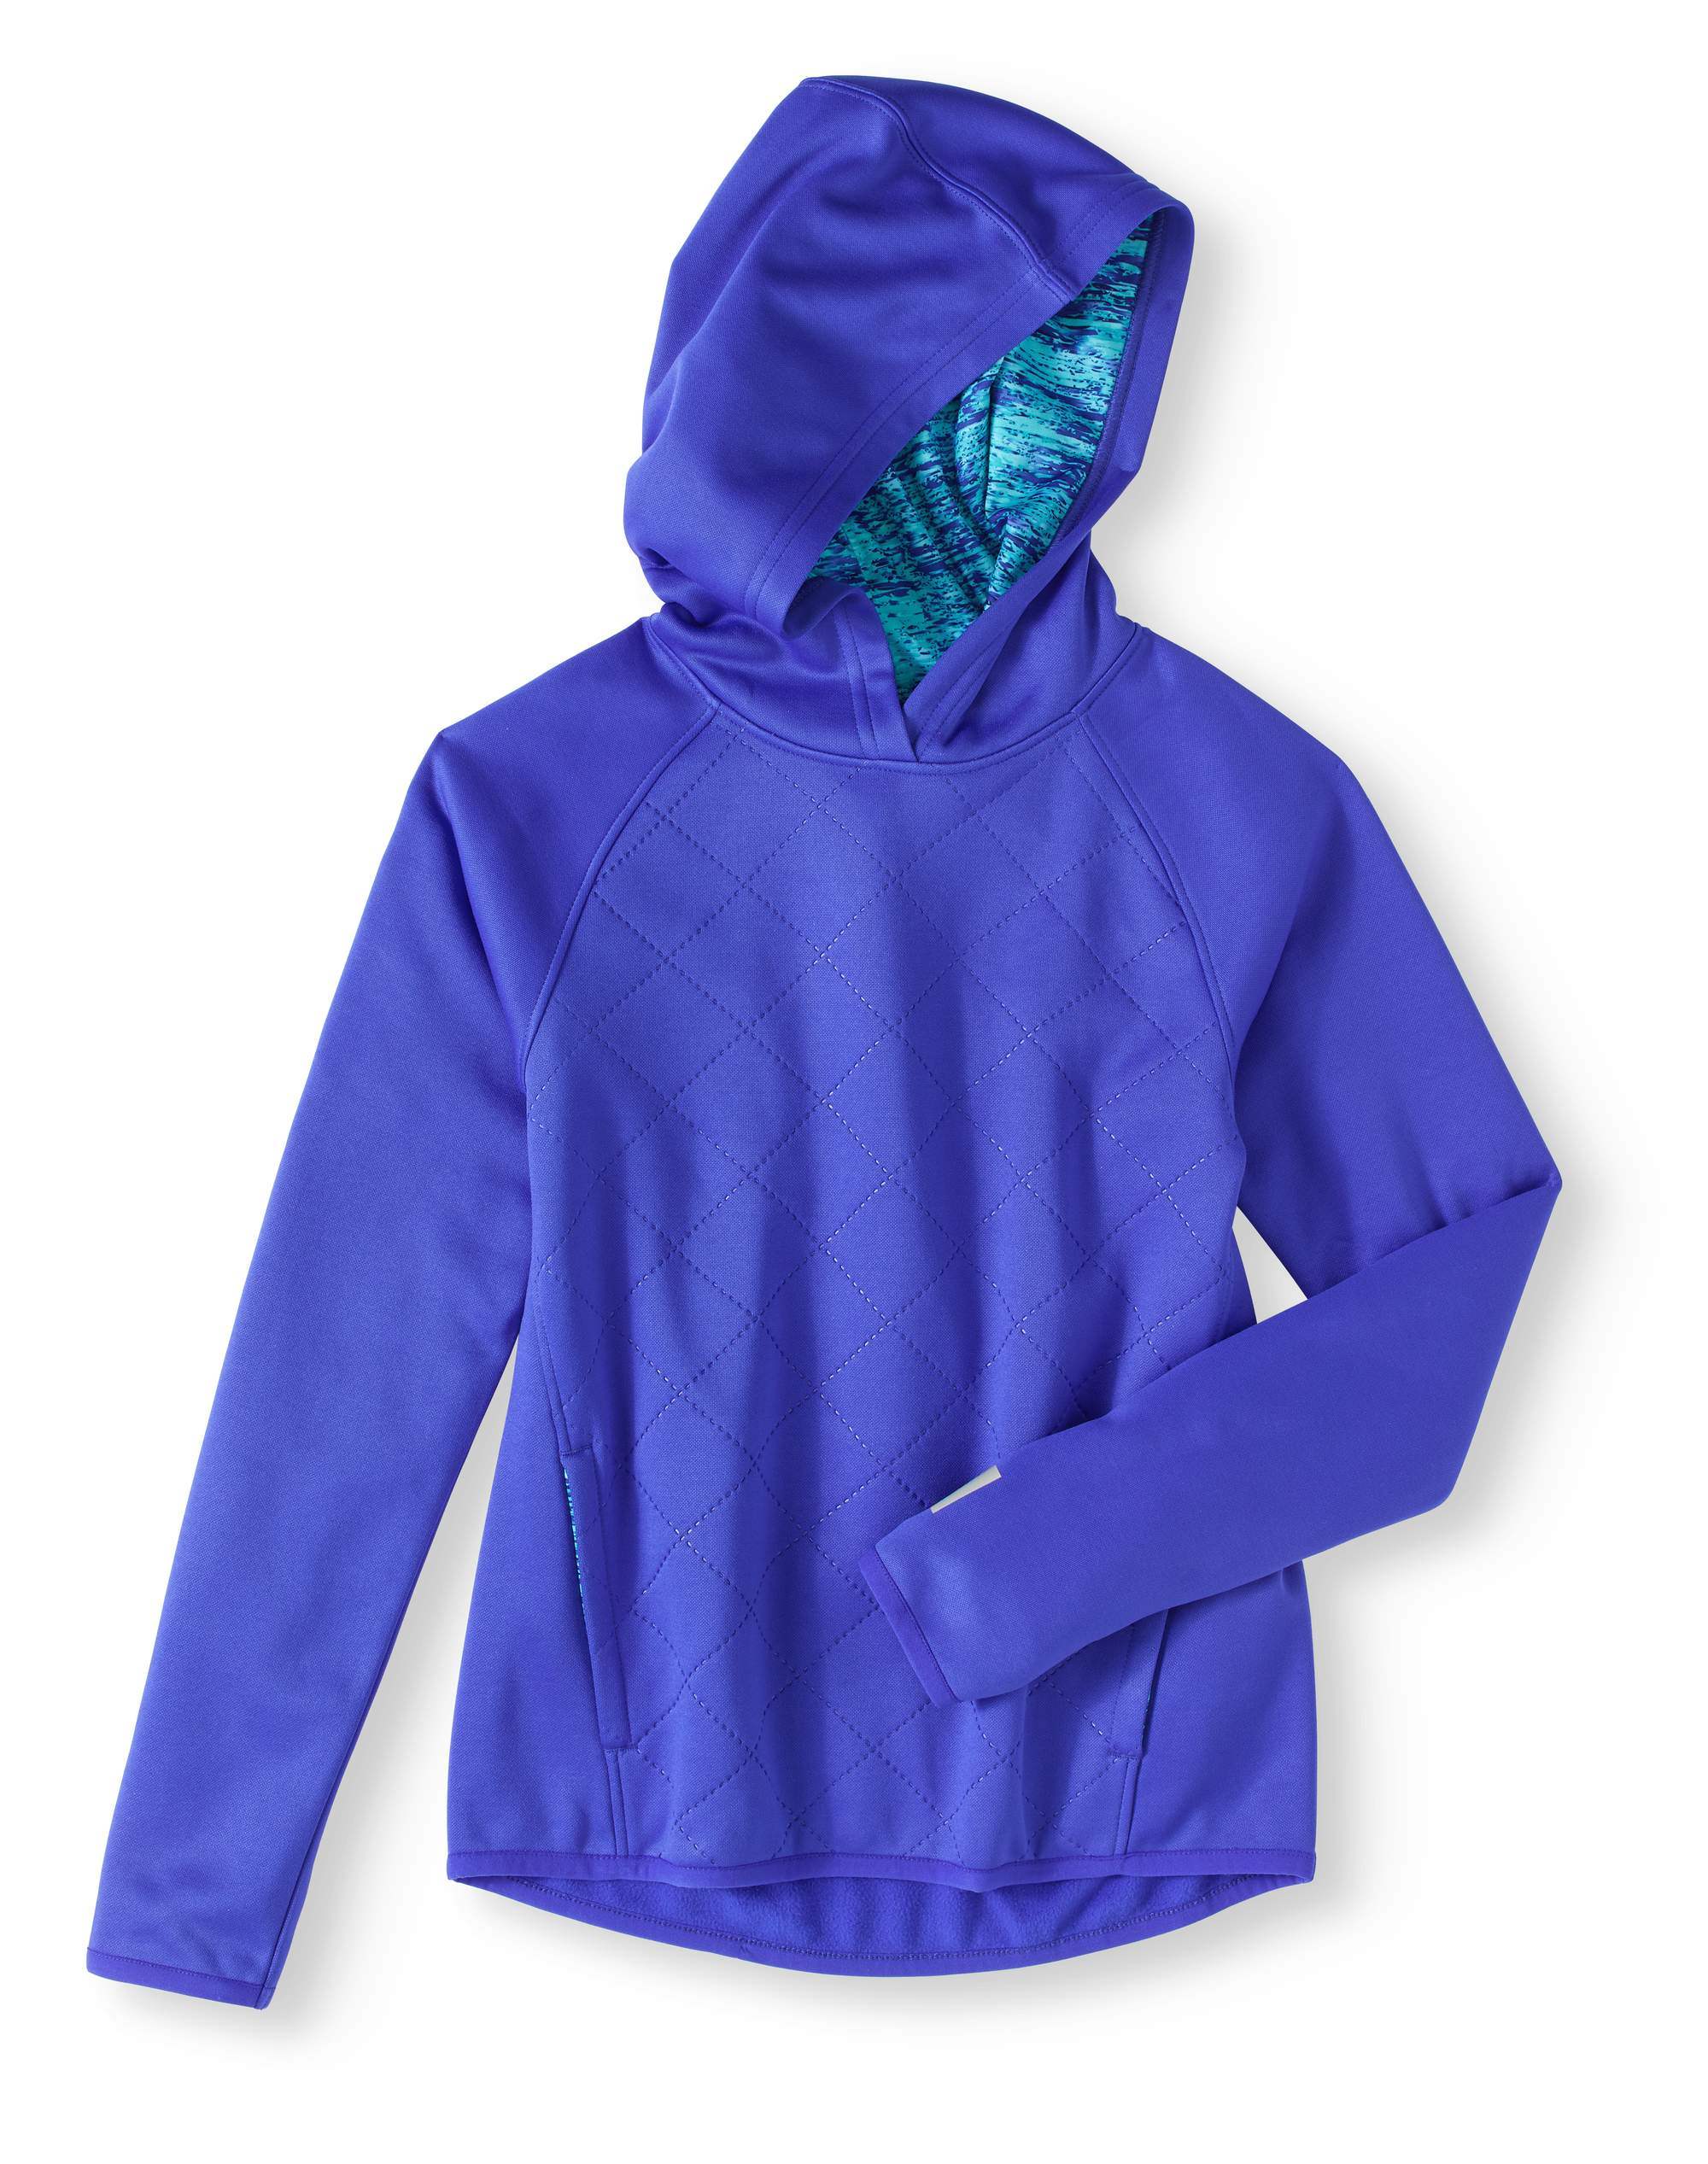 Girls' The Chill Performance Fleece Active Hoodie